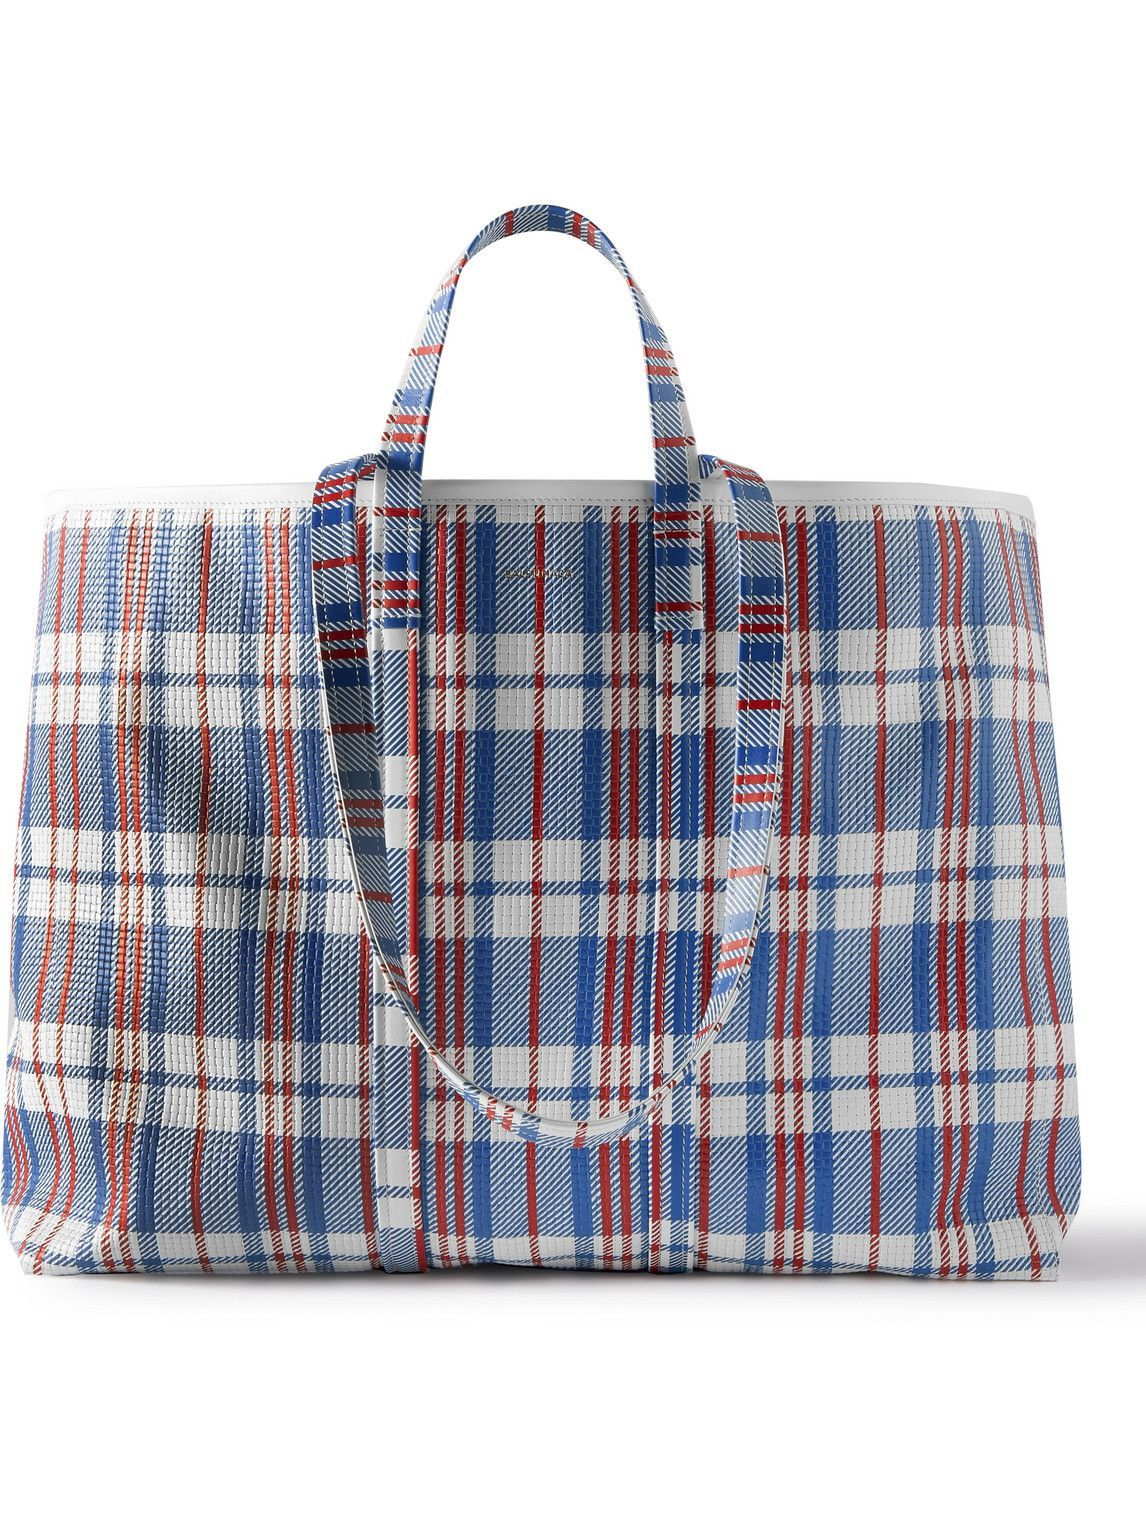 Photo: Balenciaga - Barbes Embossed Checked Leather Tote Bag